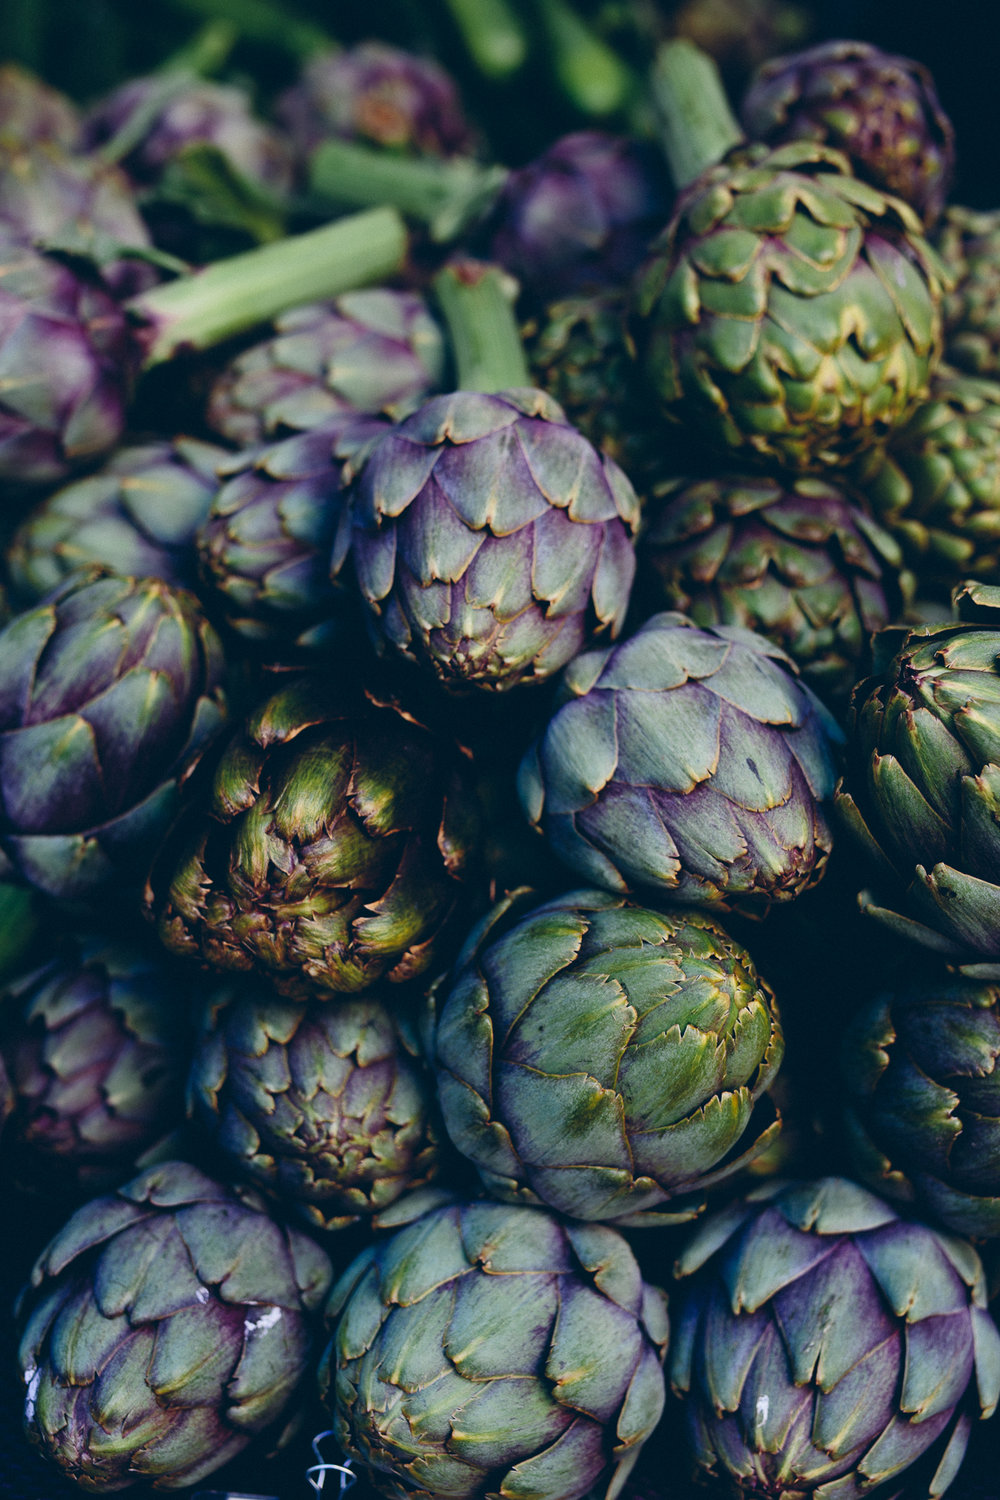 Artichokes from Portland Farmer's Market, July 2017